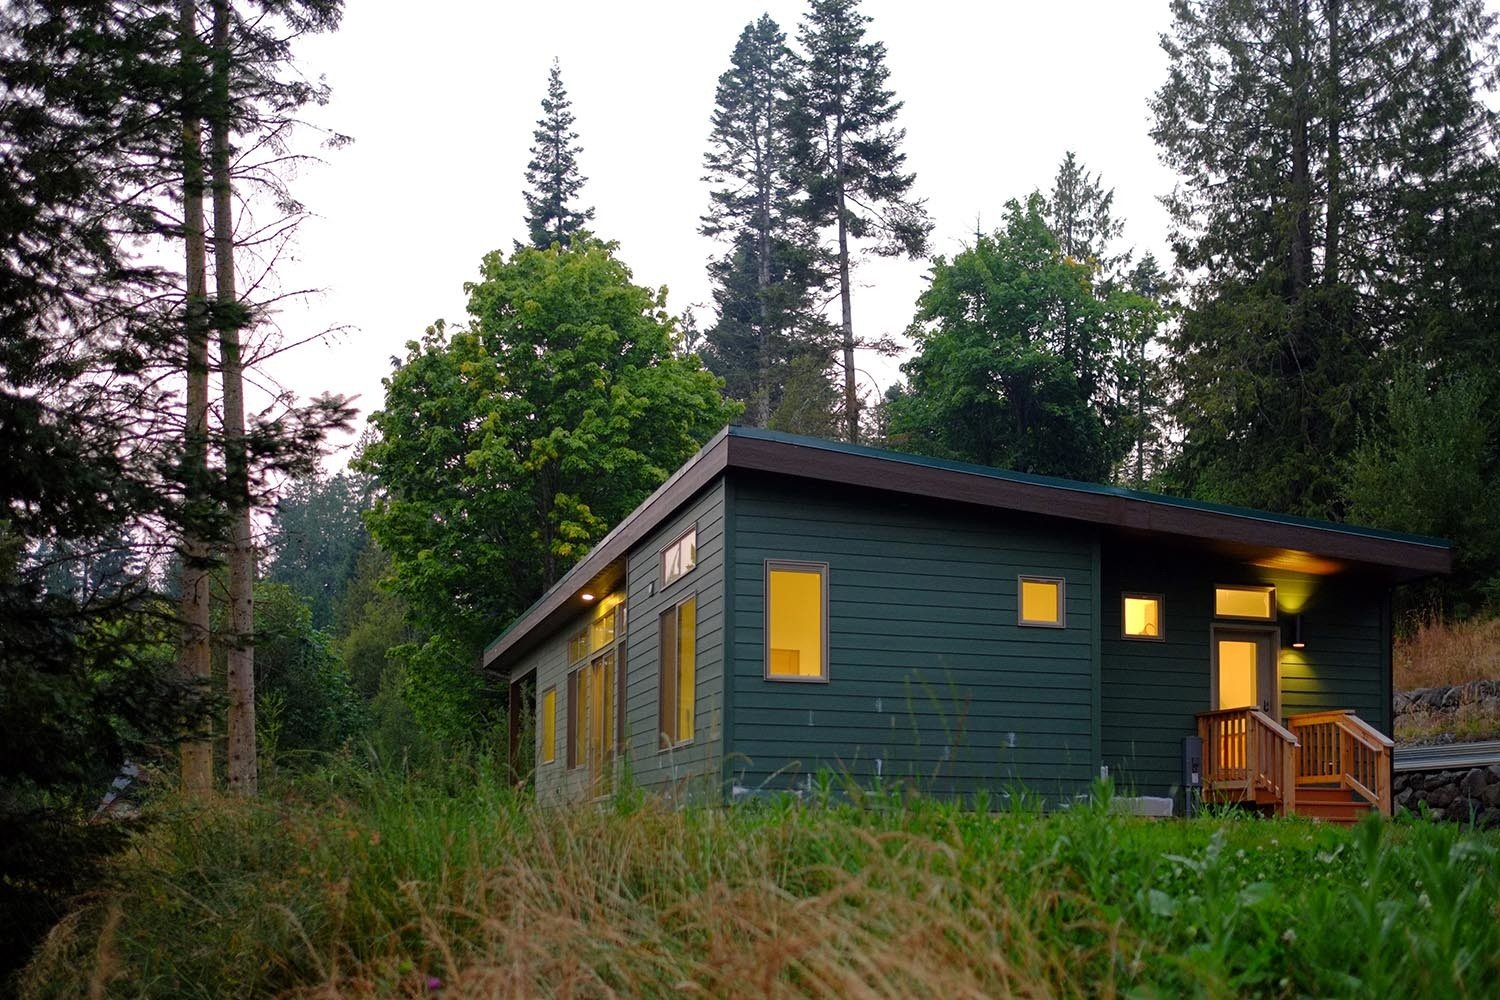 Exterior, Shed RoofLine, Metal Roof Material, Prefab Building Type, and Wood Siding Material Constructed with durable Montana timber, corrugated metal roofing, and energy-efficient windows, the FUSE 2 by Ideabox is a 1,360-square-foot modular home.